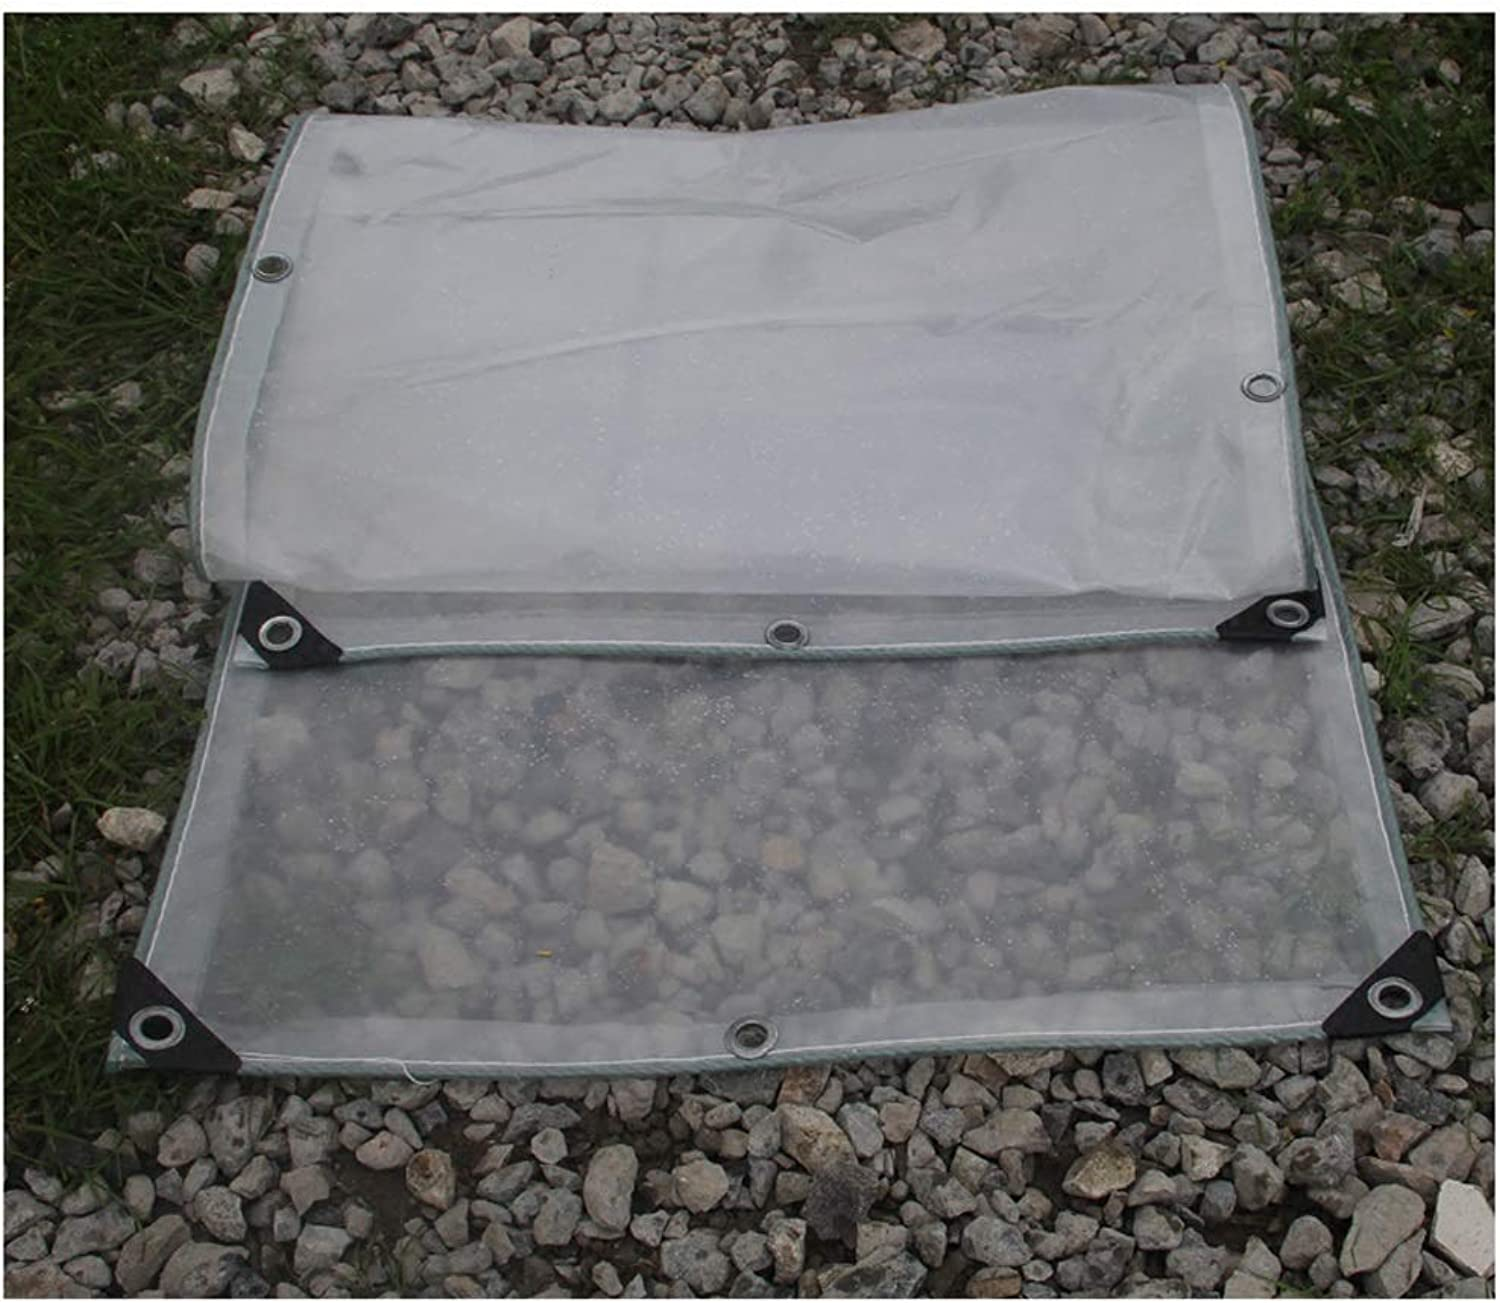 Good Cleaning Tarpaulin Transparent Cloth Tarpaulin for Outdoor Furniture Picnic Vehicle Camping Multiple